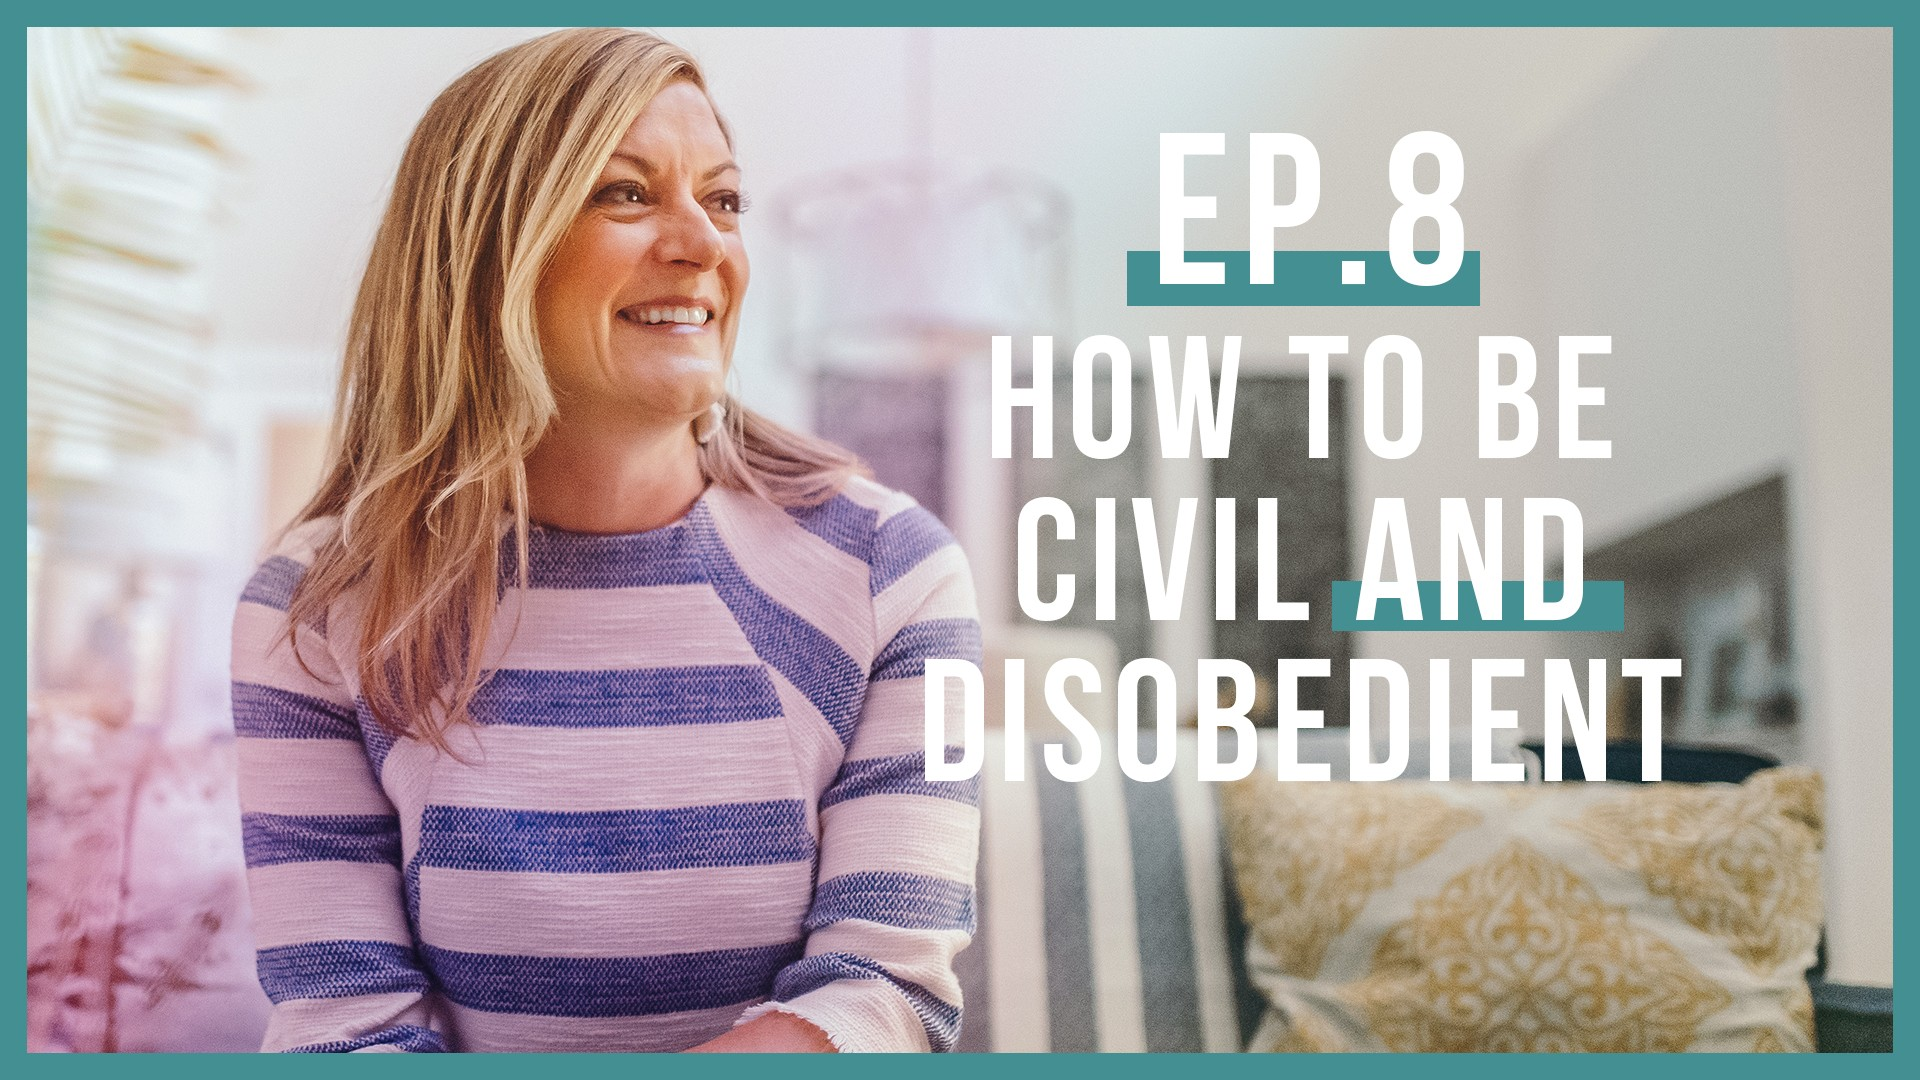 How to be Civil and Disobedient (Let's Be Real, Ep.8)